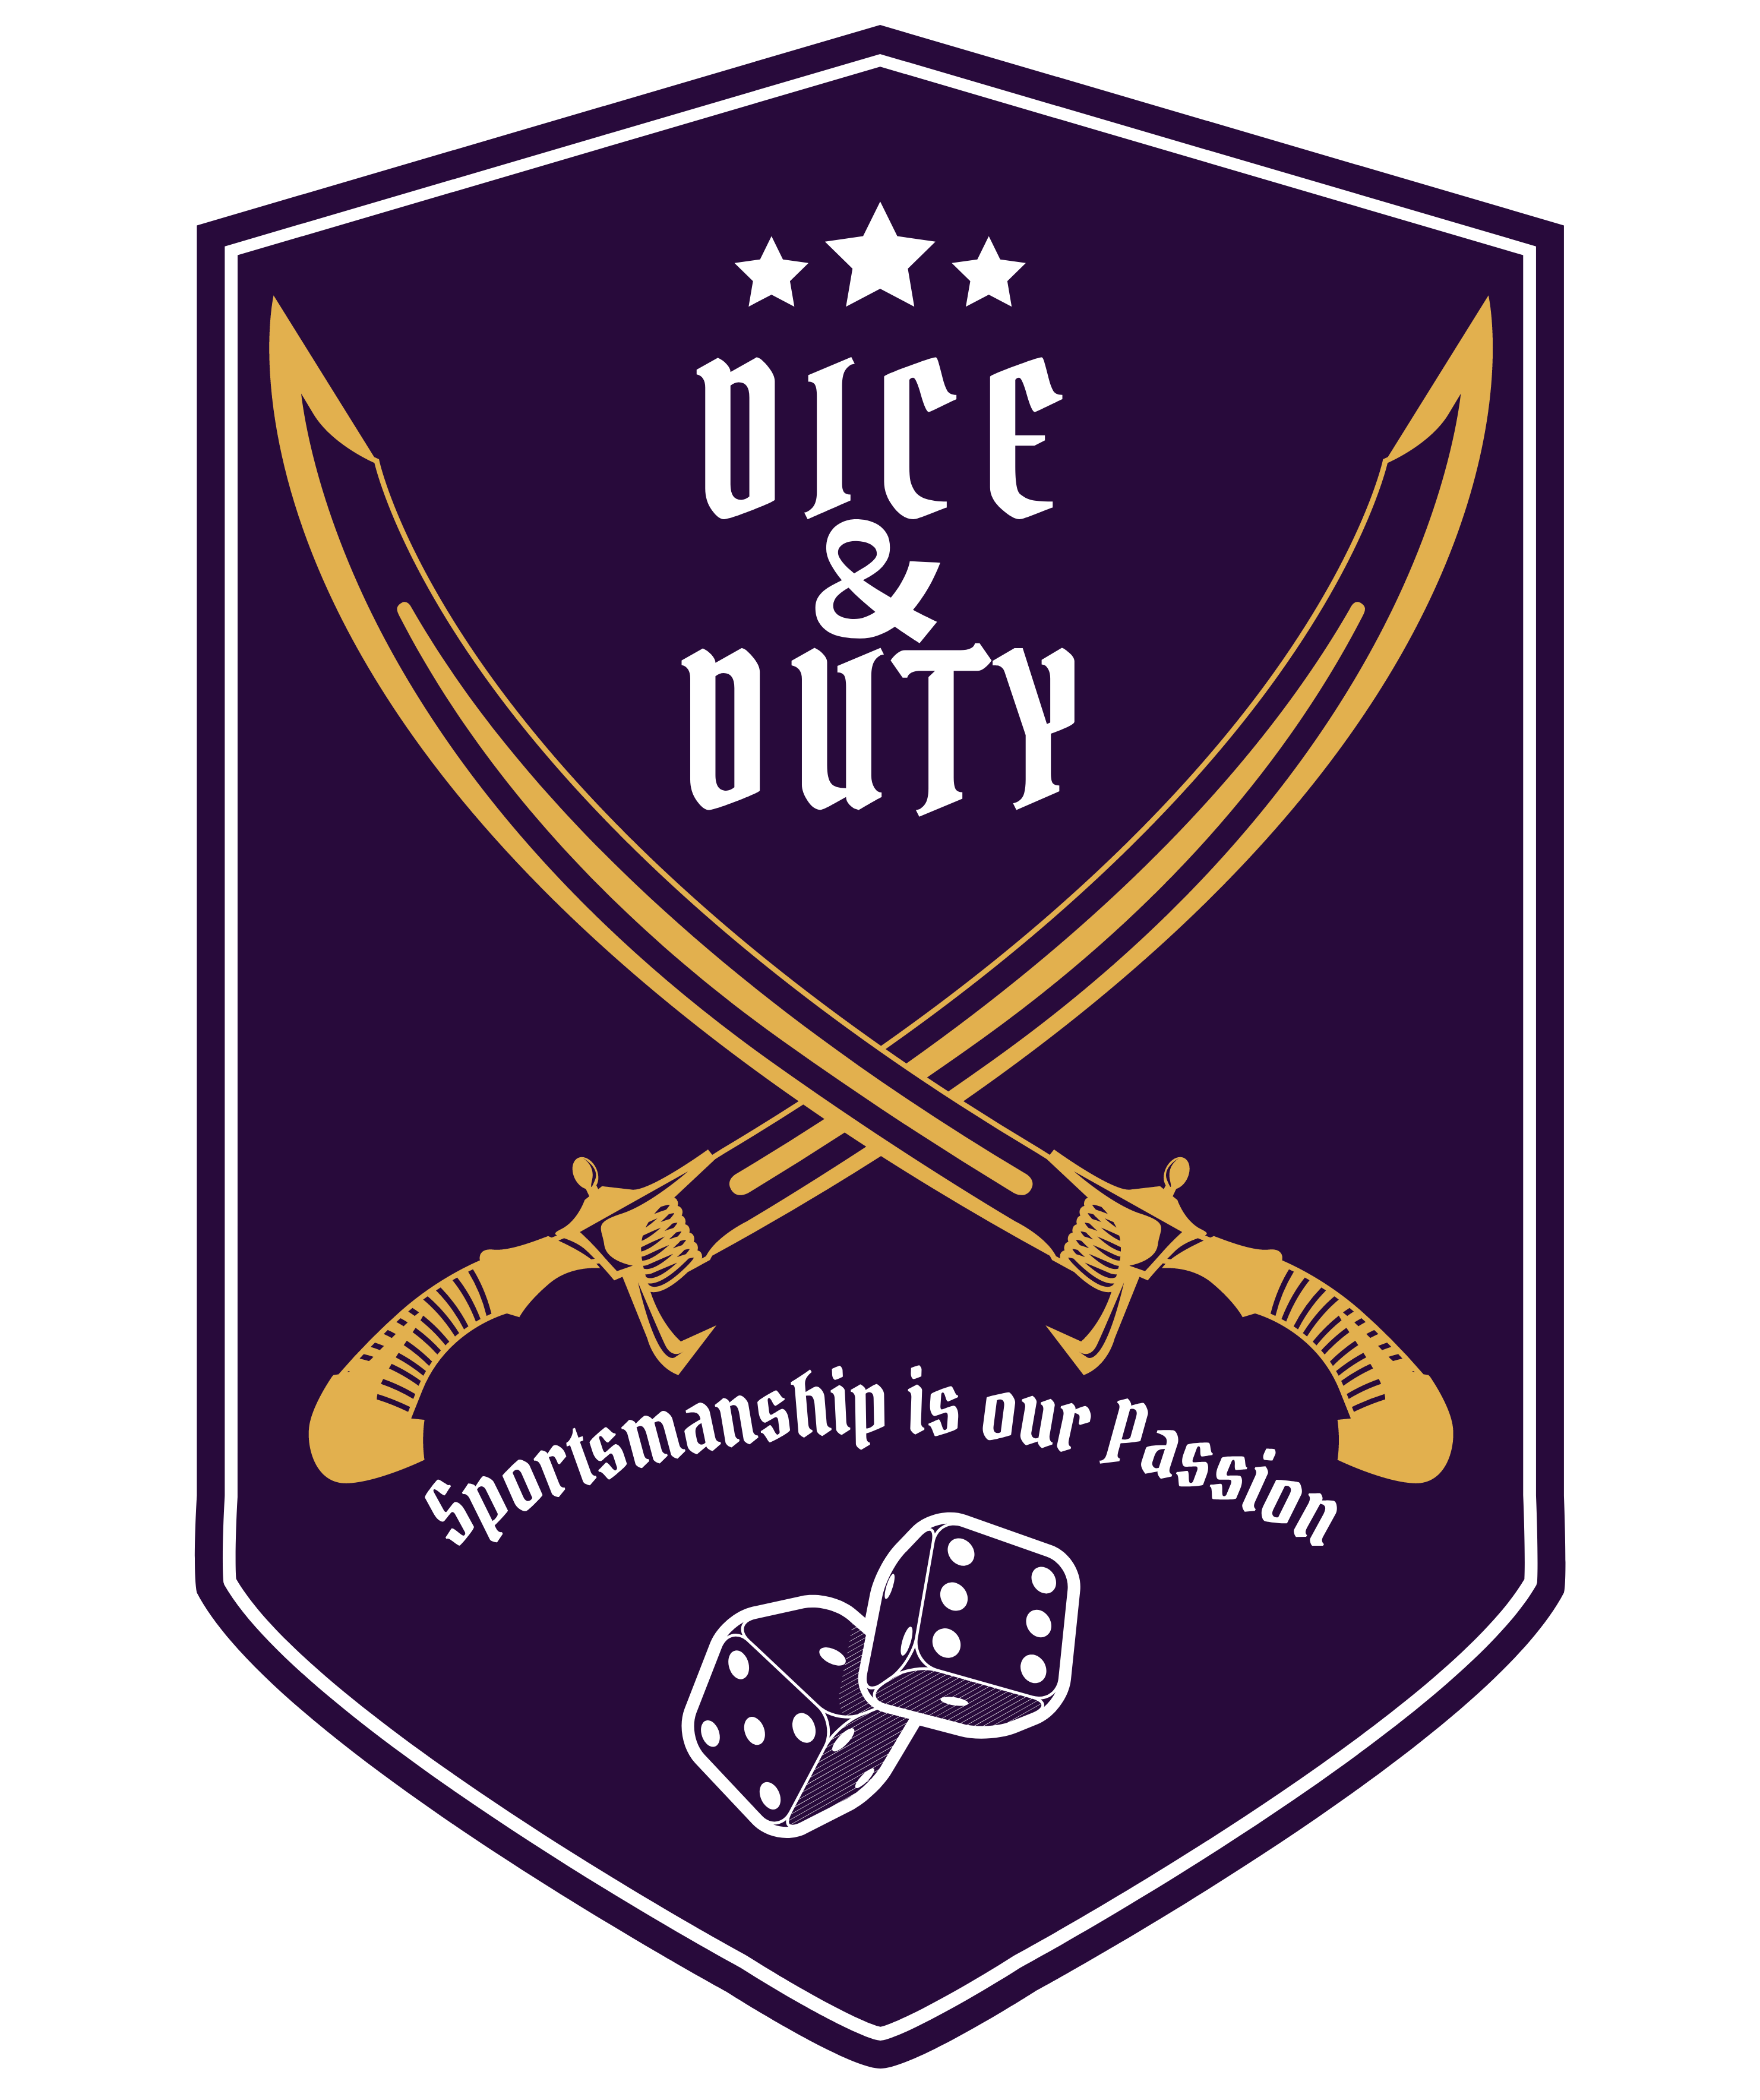 Dice and Duty